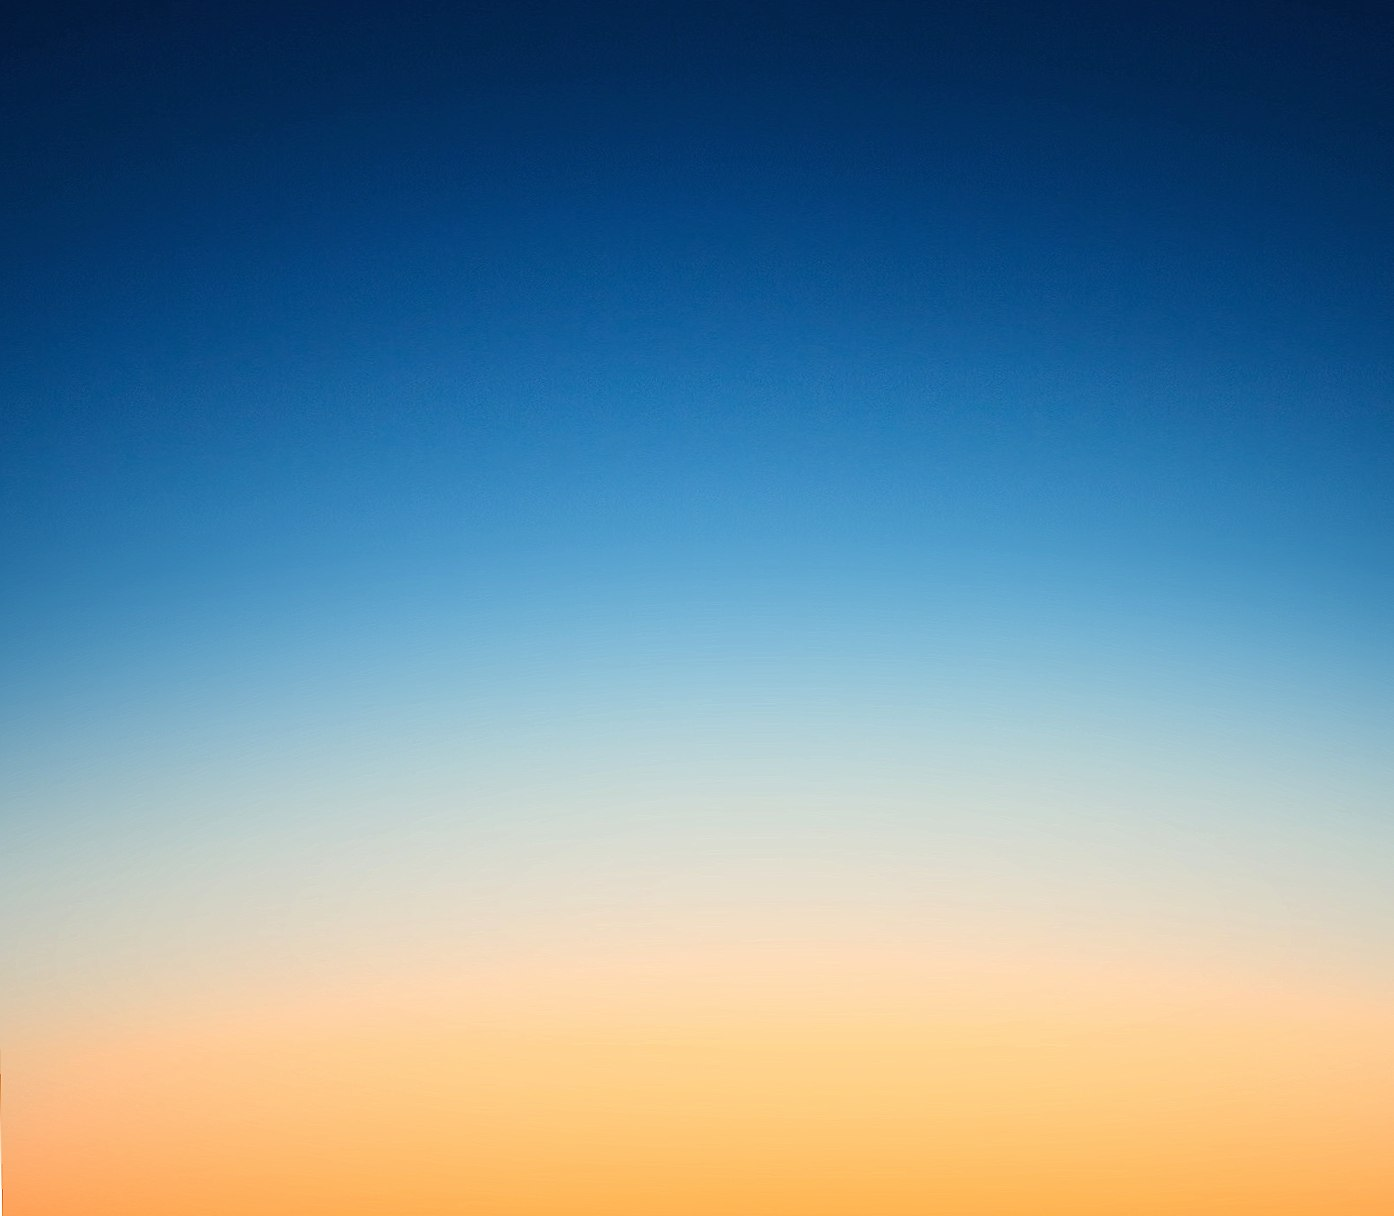 minimal ios at 750 x 1334 iPhone 6 size wallpapers HD quality